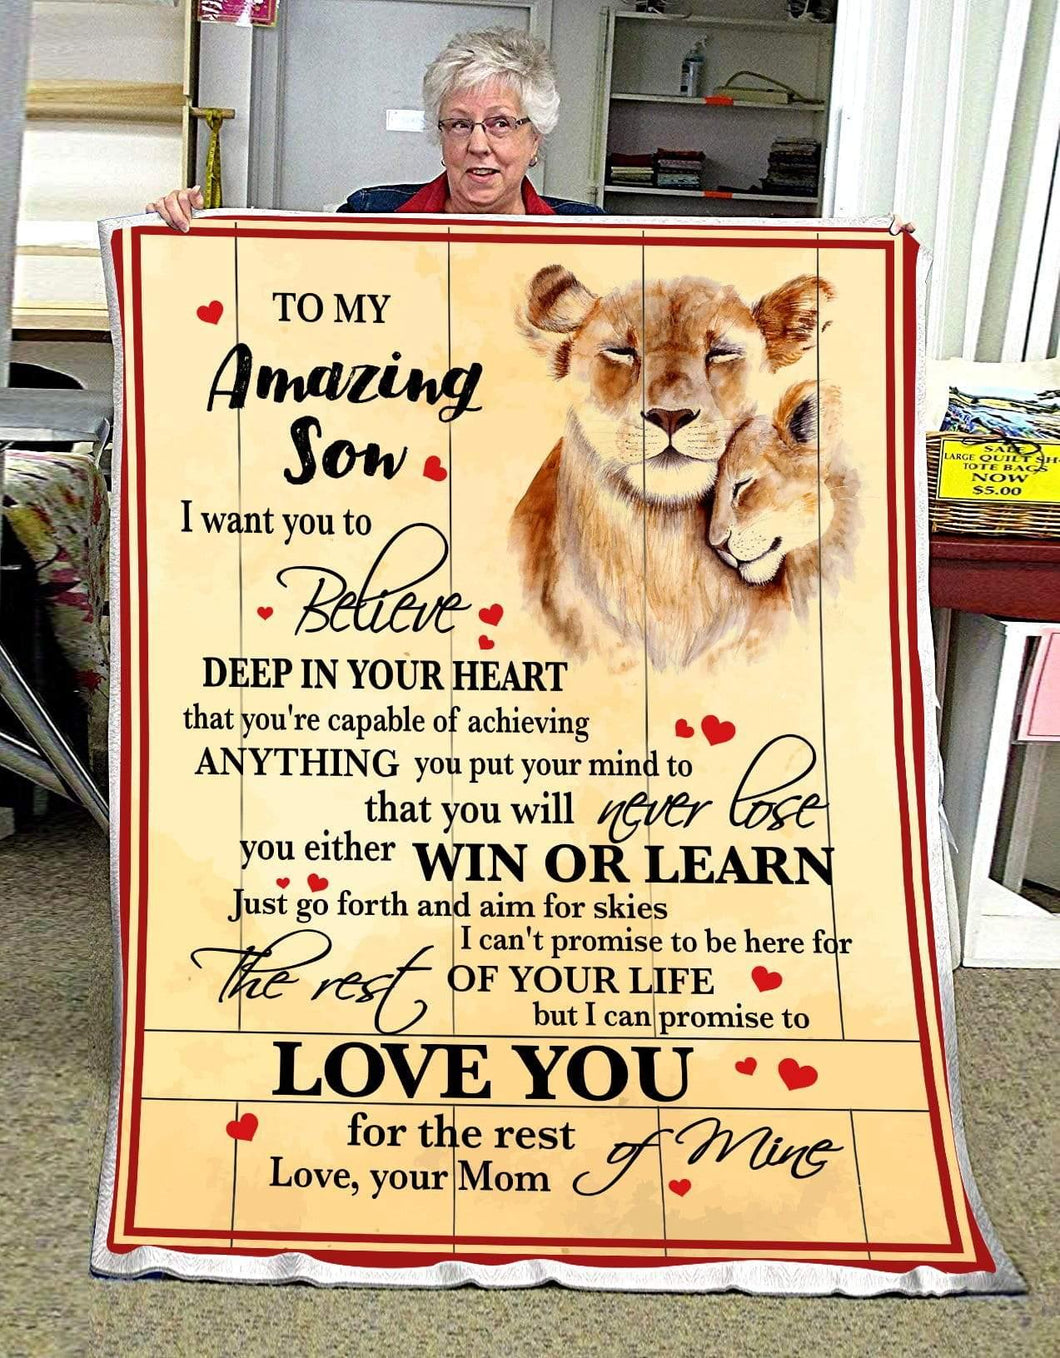 BLANKET - LION - Son (Mom) - Love you for the rest of mine